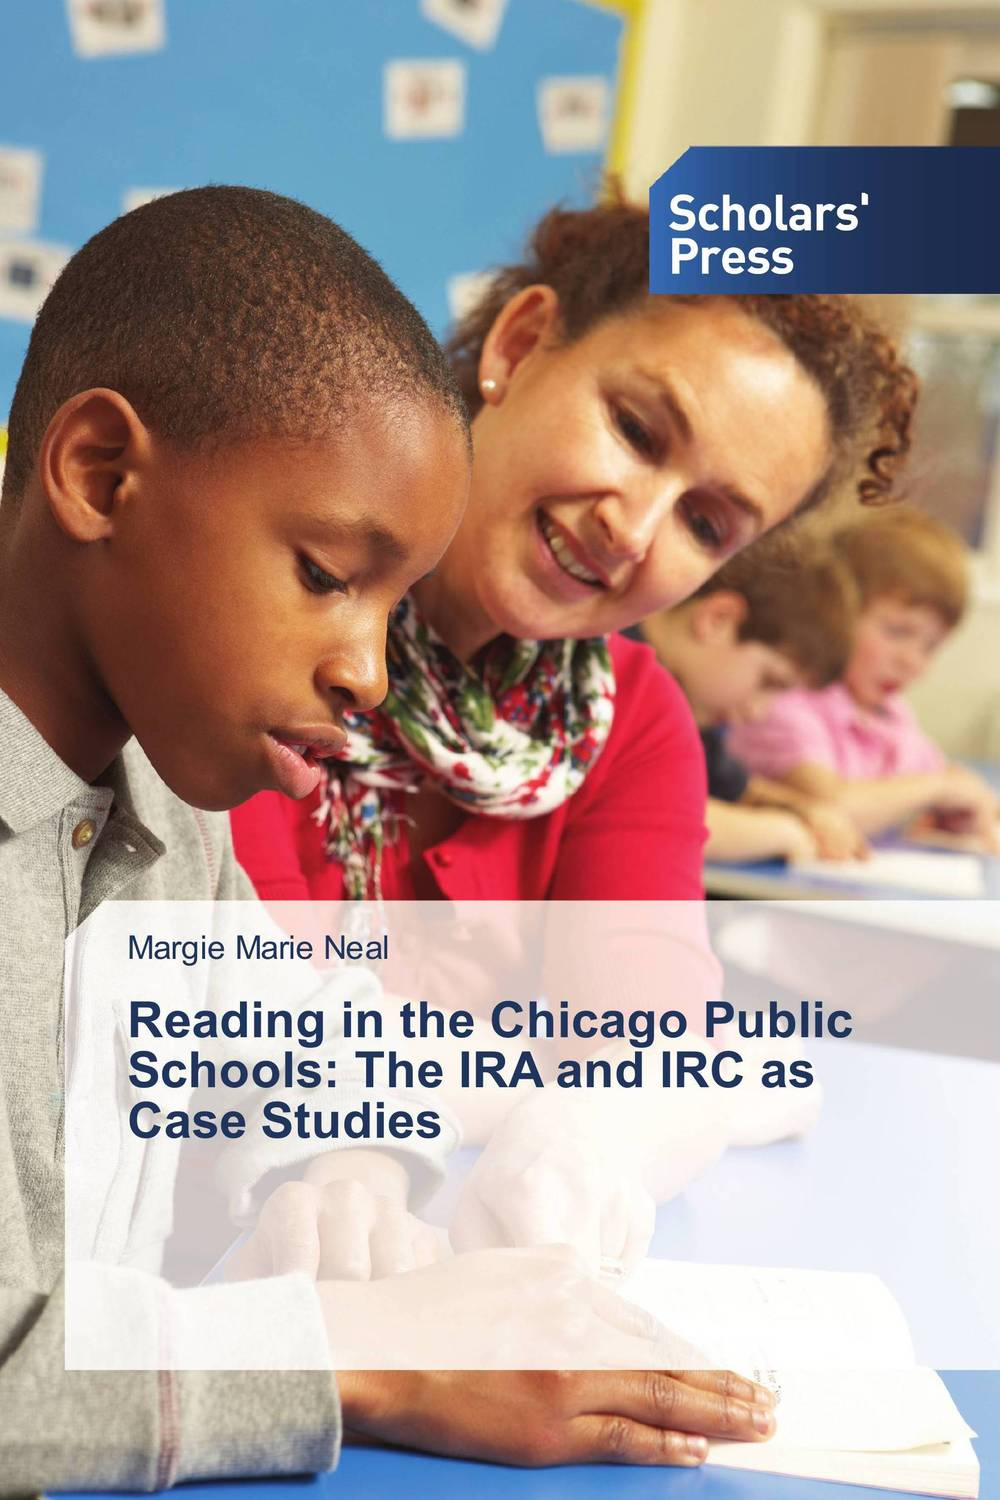 Reading in the Chicago Public Schools: The IRA and IRC as Case Studies